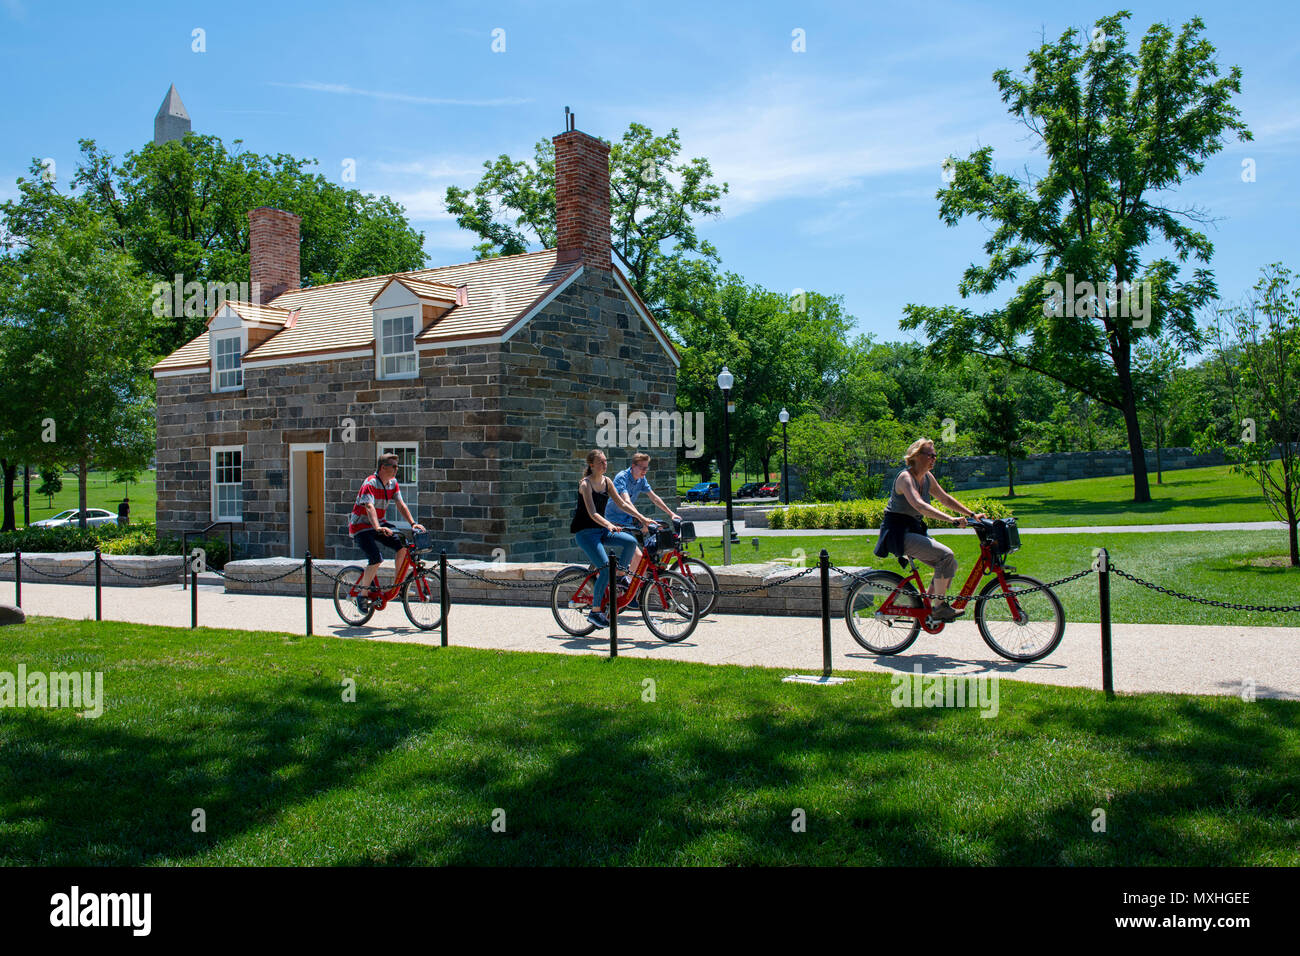 usa-washington-dc-lock-keepers-house-on-